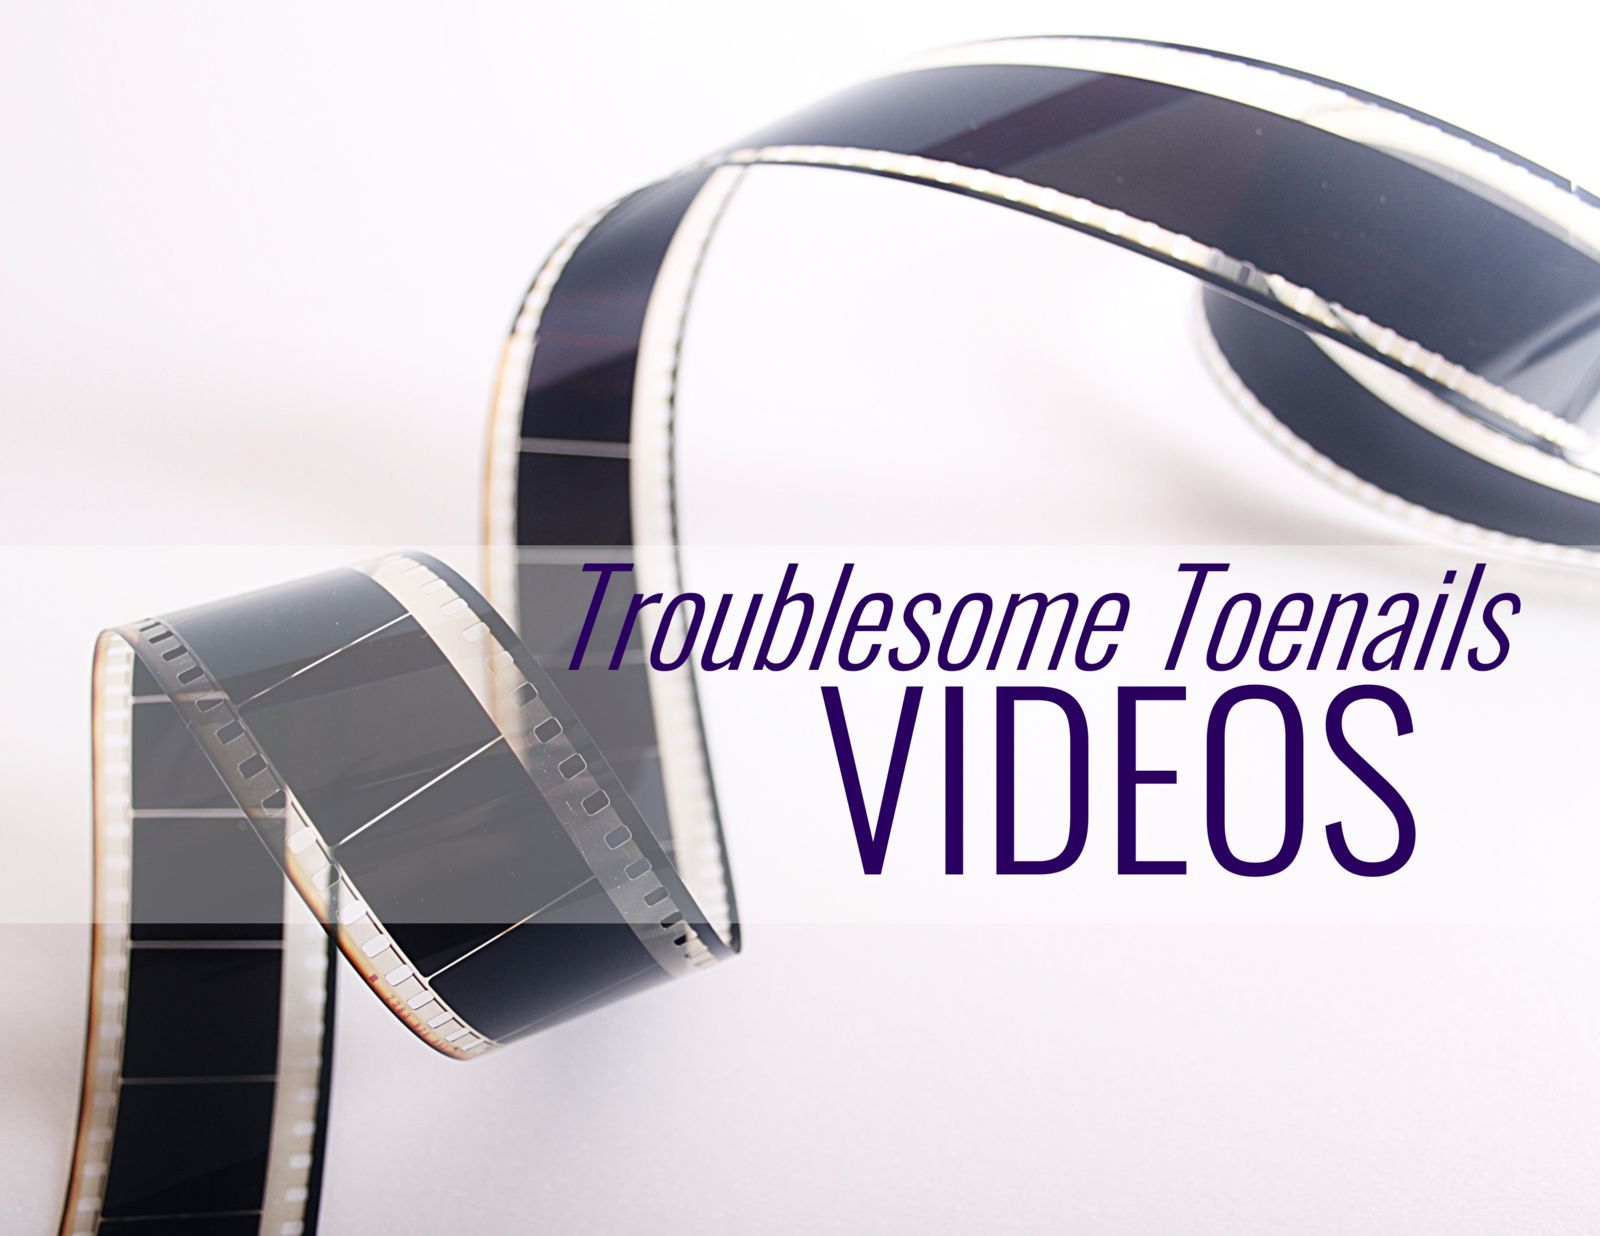 movie reel and the words Troublesome toenails videos